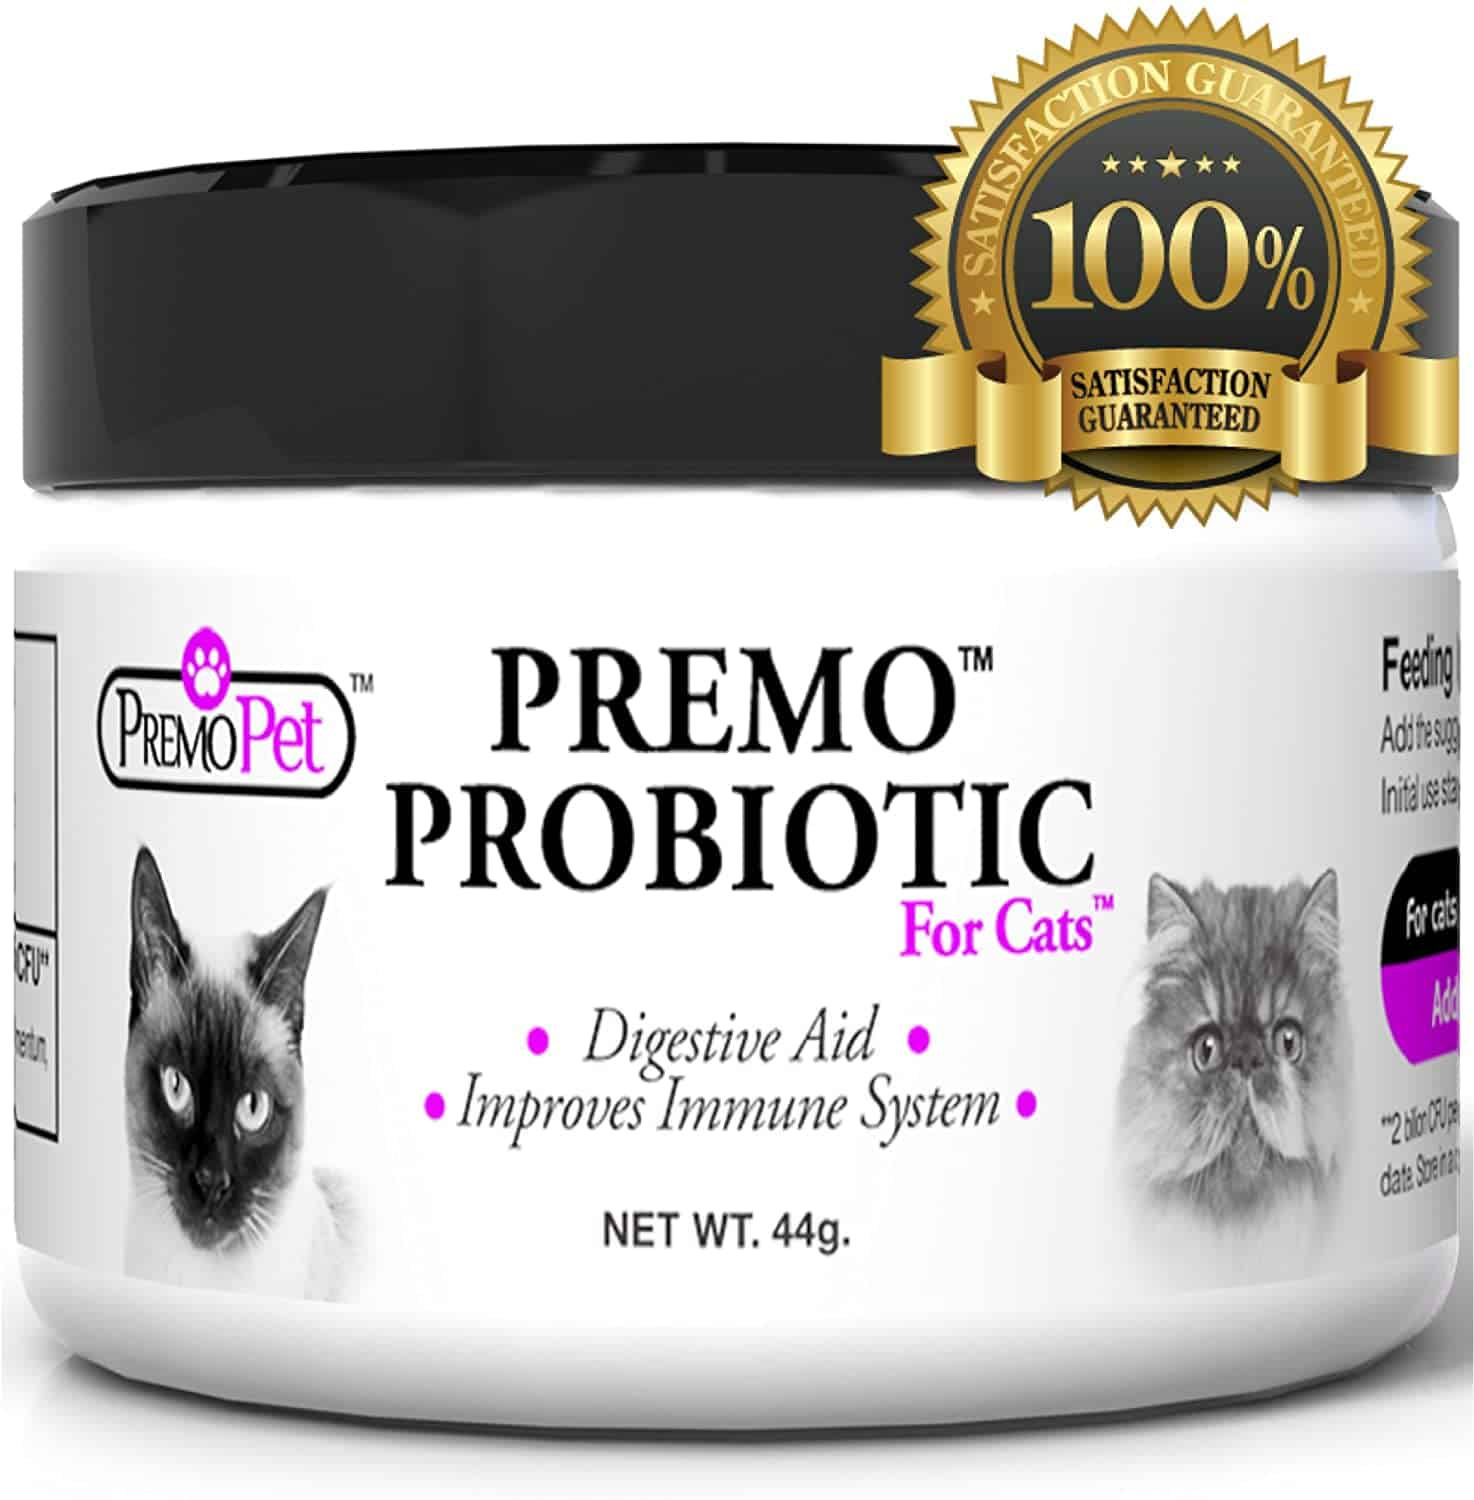 What You Need To Know About Probiotics For Cats 3